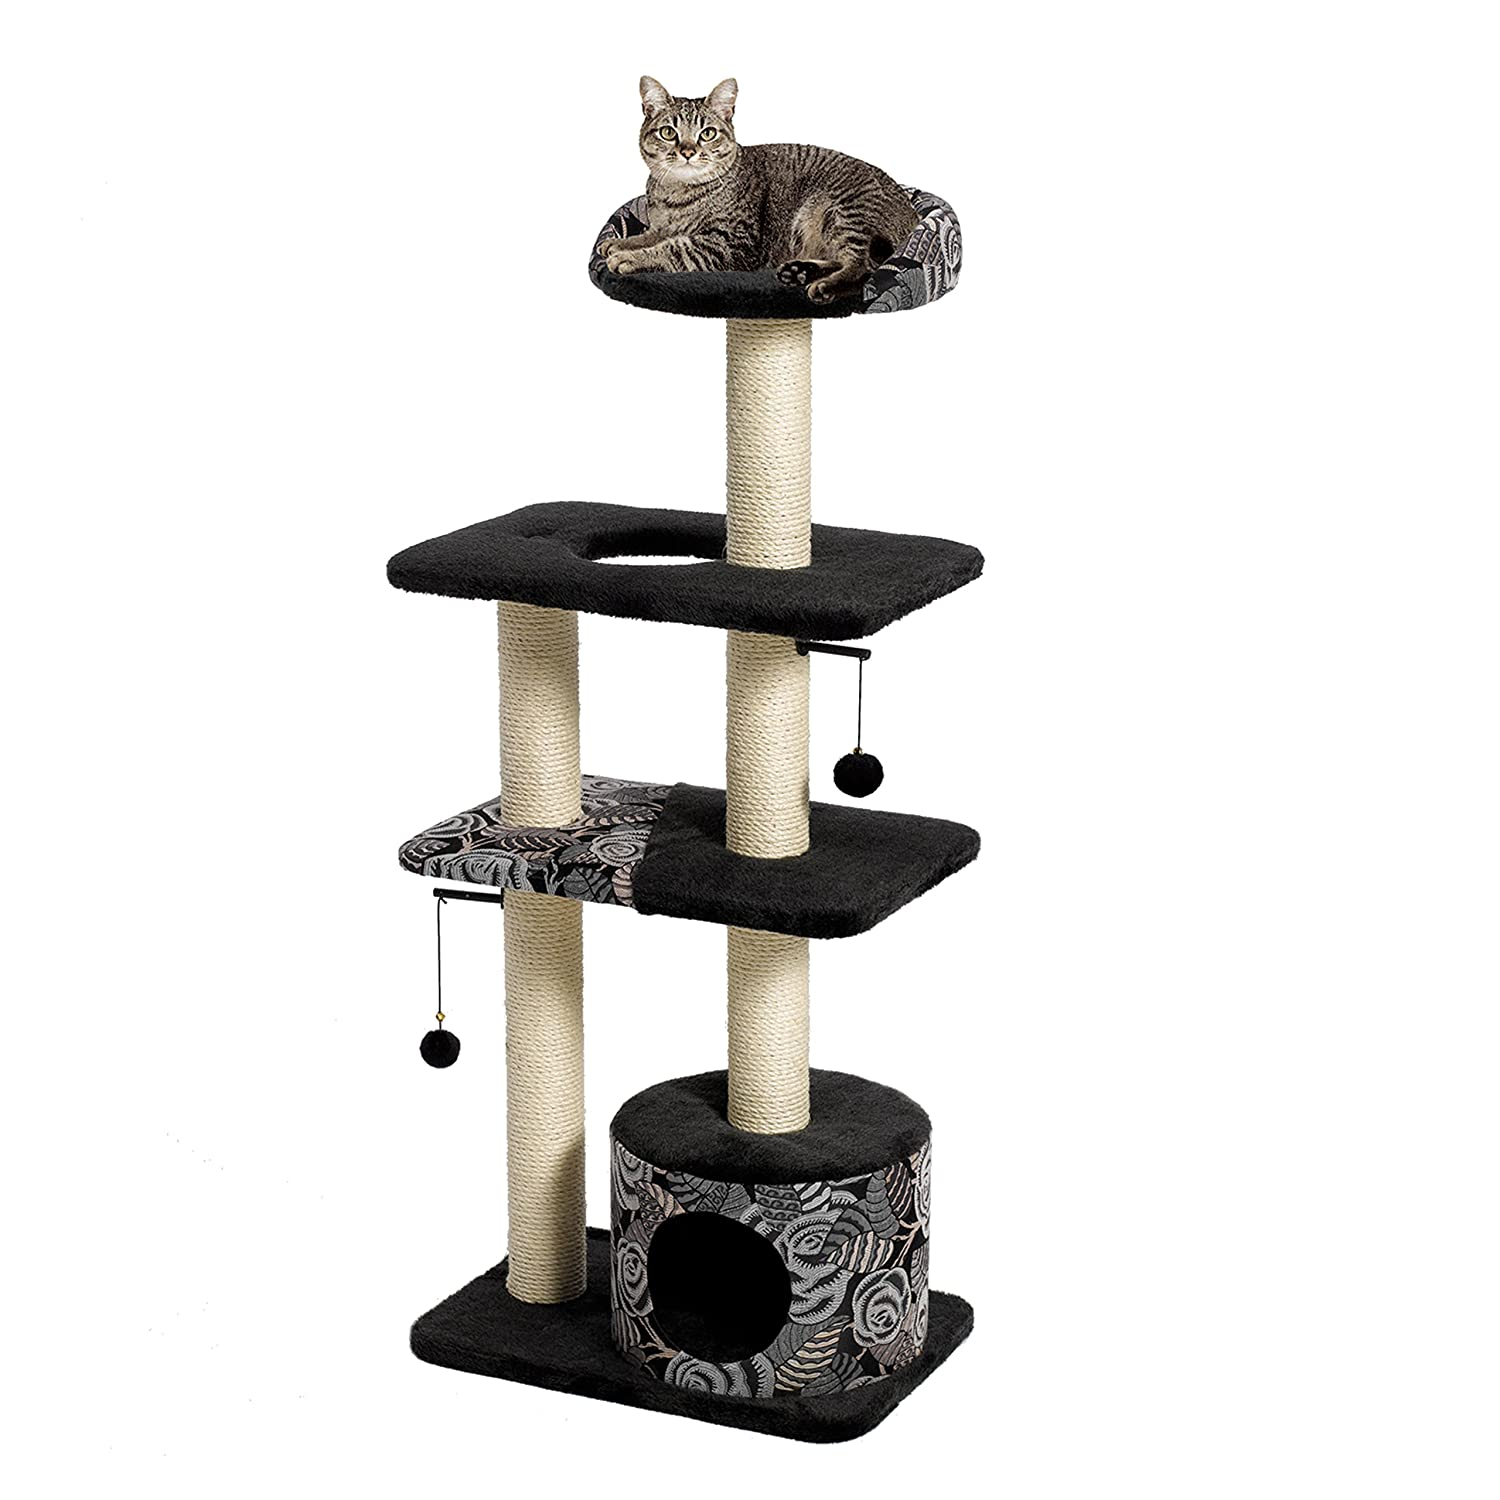 Amazon com midwest homes for pets cat tree tower cat furniture 5 tier cat tree w sisal wrapped support scratching posts high cat look out perch